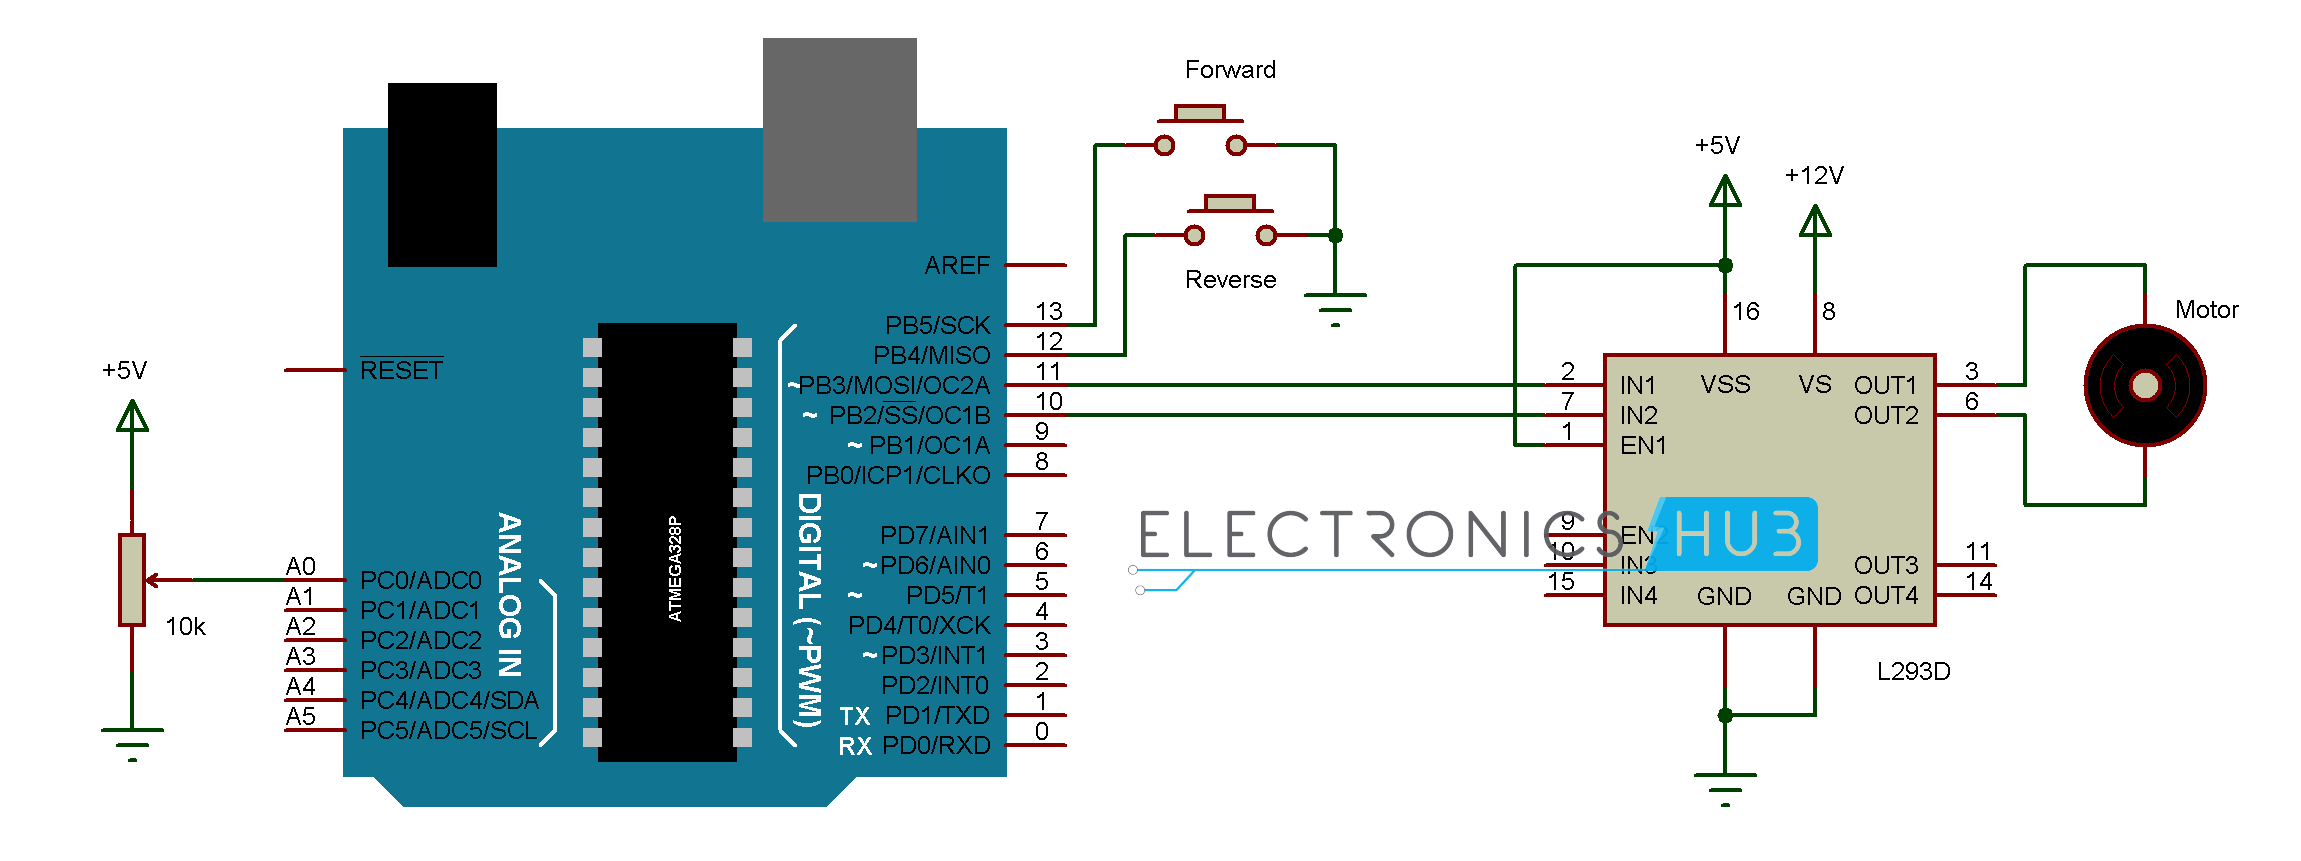 Circuit Diagram. arduino_dc_motor_control_circuit_diagram